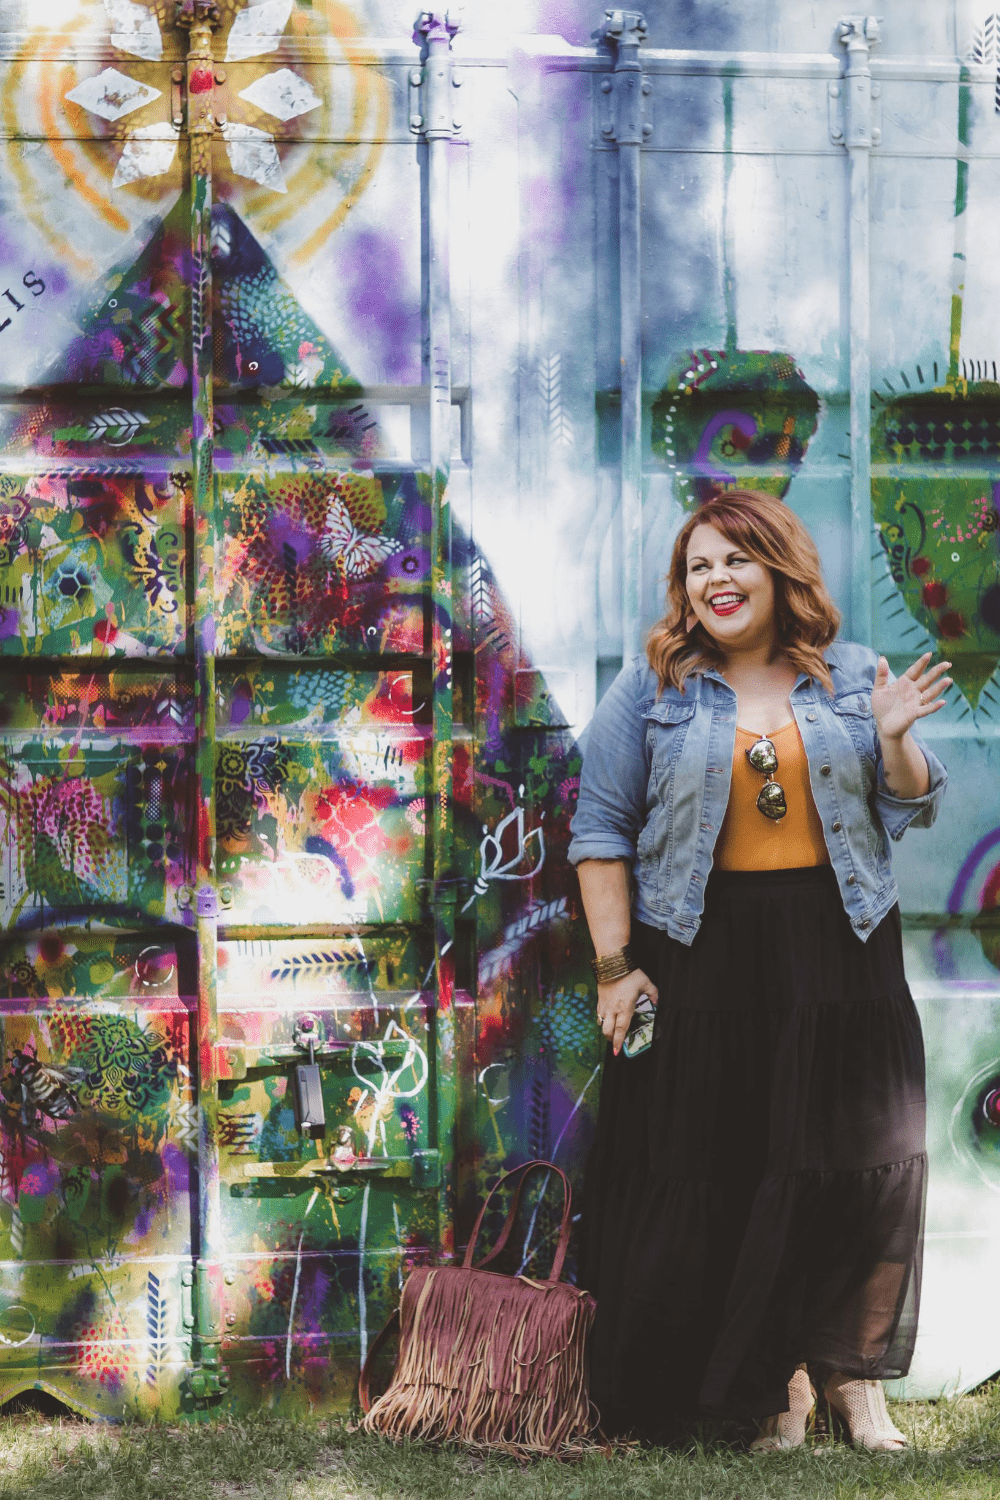 Karine Parthenais in front of a graffiti wall